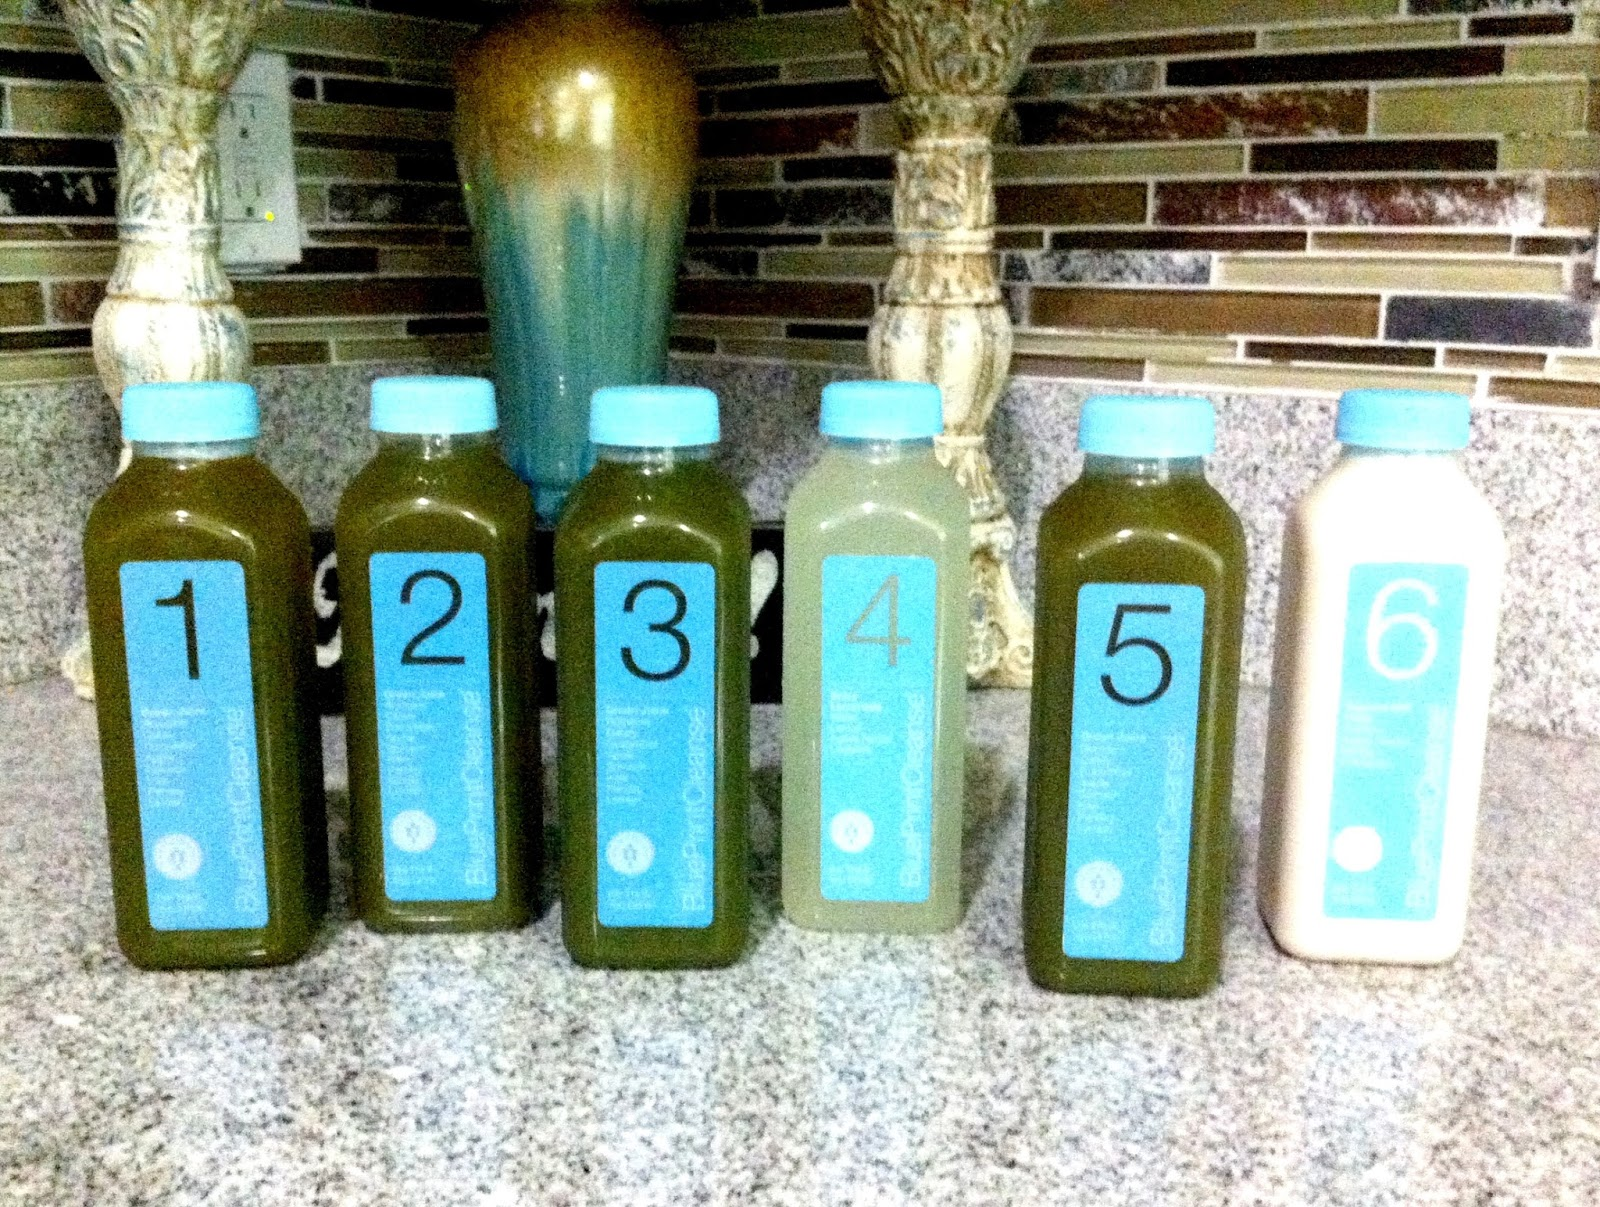 Dot dot dot blueprint cleanse i did my normal 2 day detox details found here then did one day of the raw juice cleanse by blueprint malvernweather Choice Image